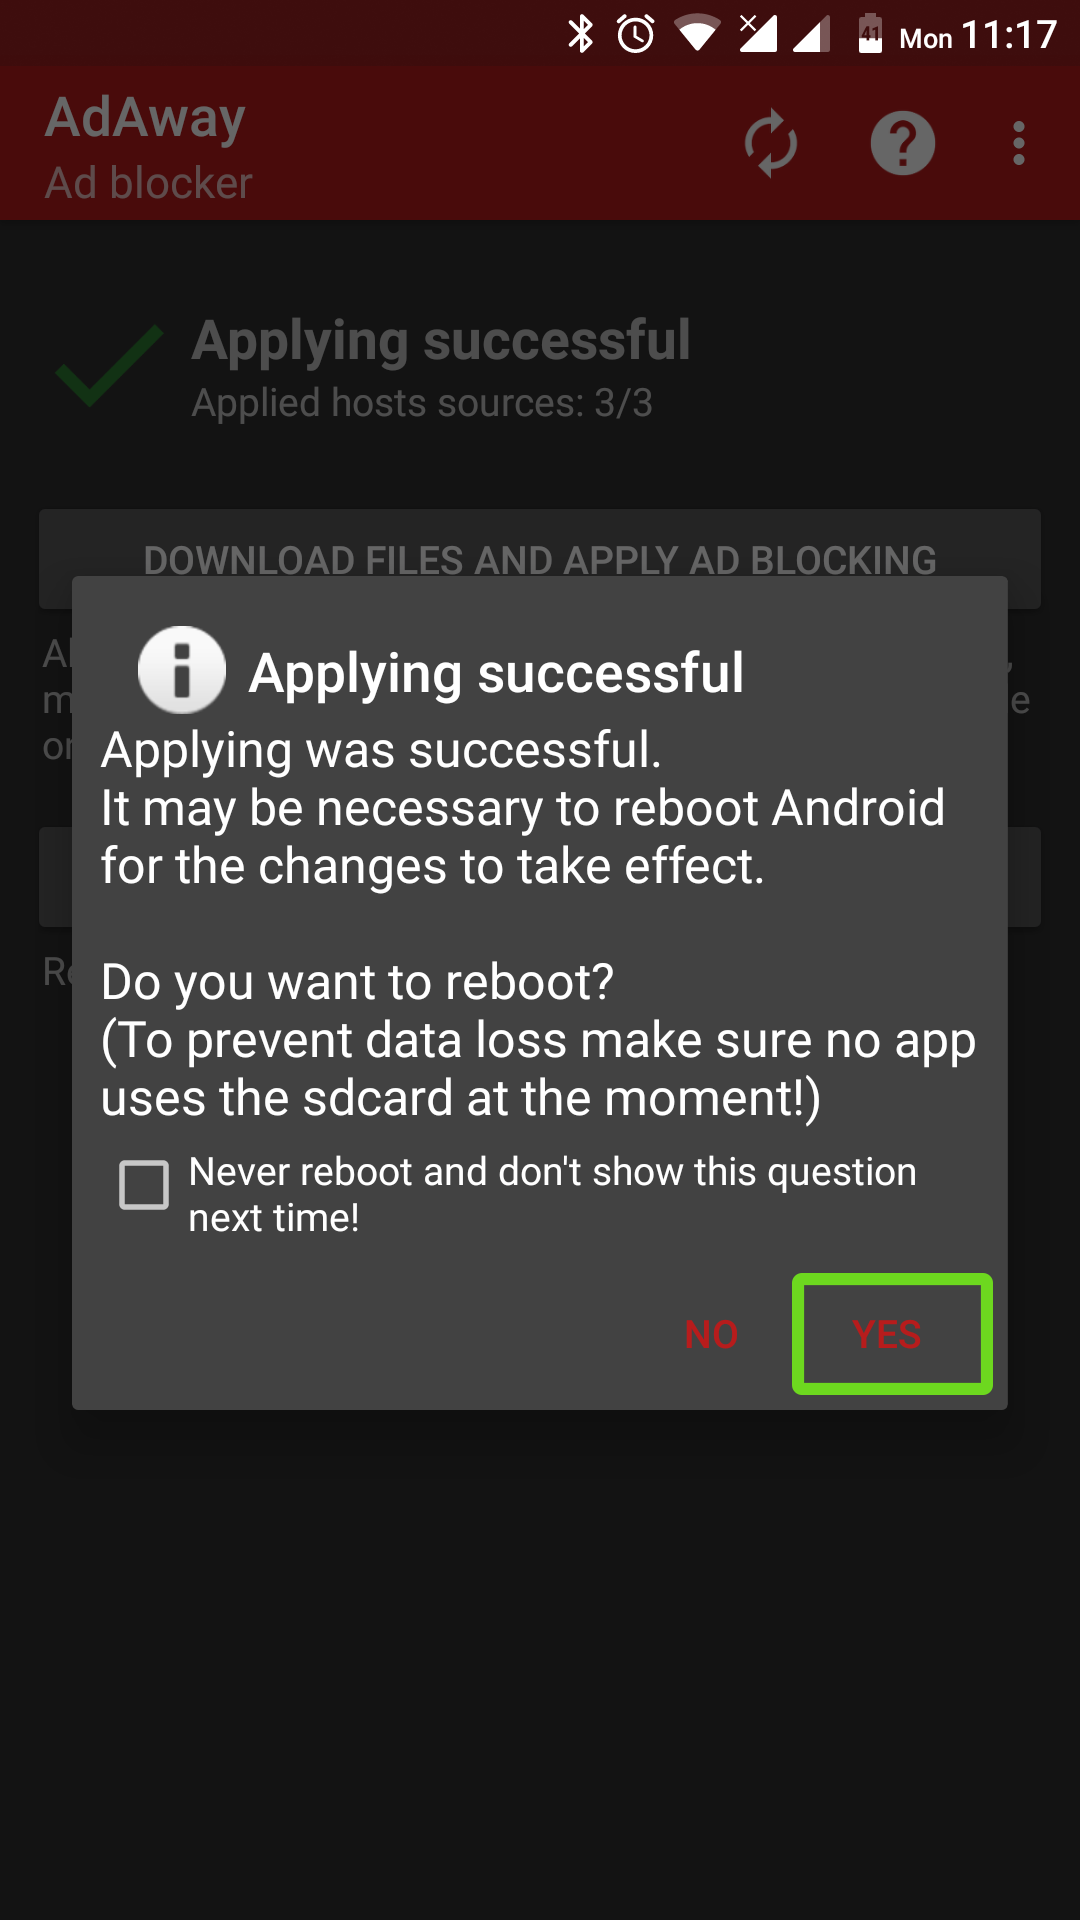 Adaway APK V5.0 Download For Android - Latest